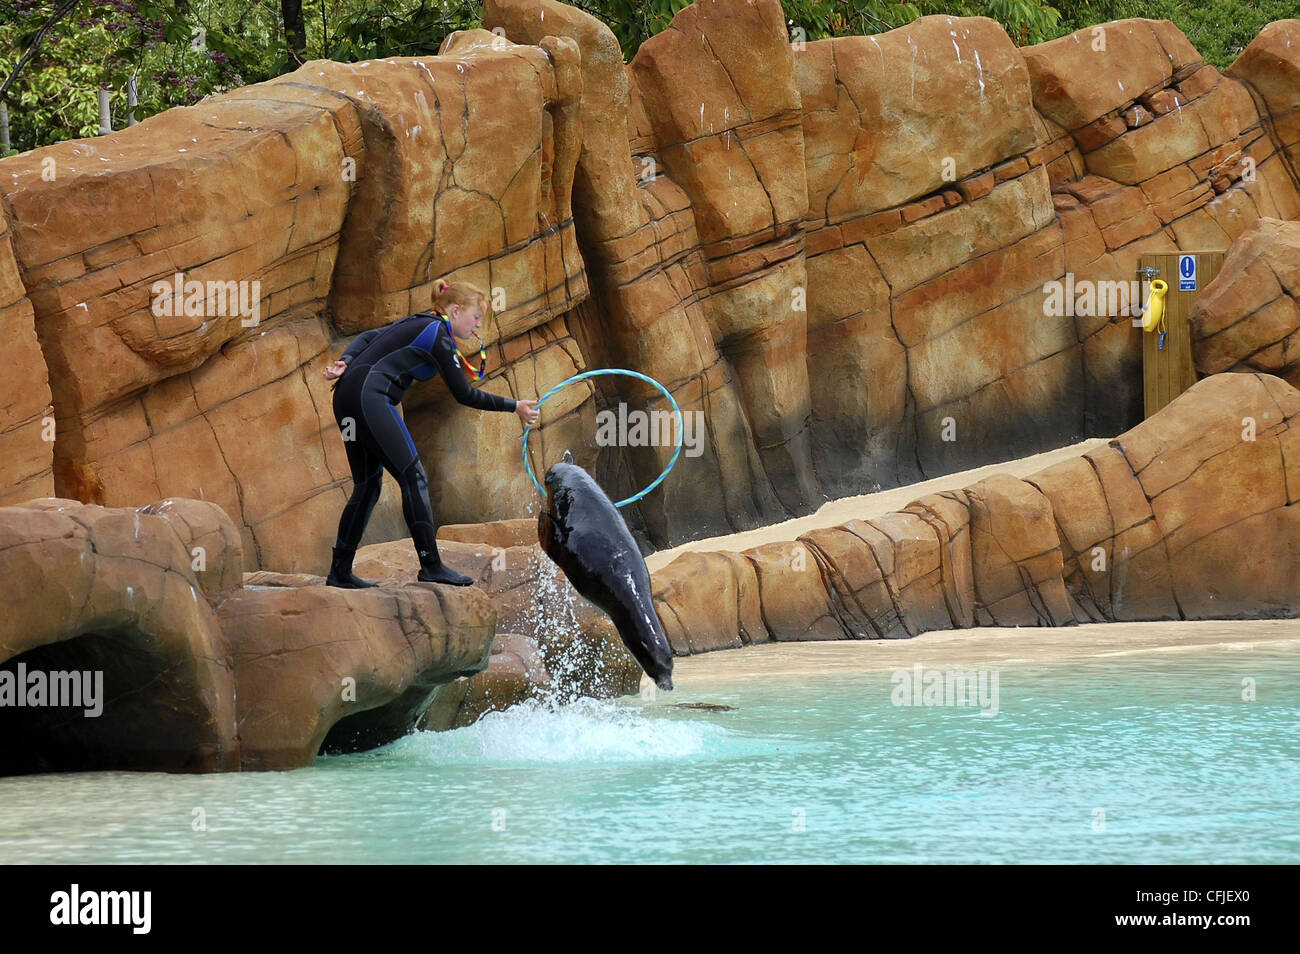 Seal jumping through hoop held by trainer in wetsuit at Blackpool Zoo - Stock Image